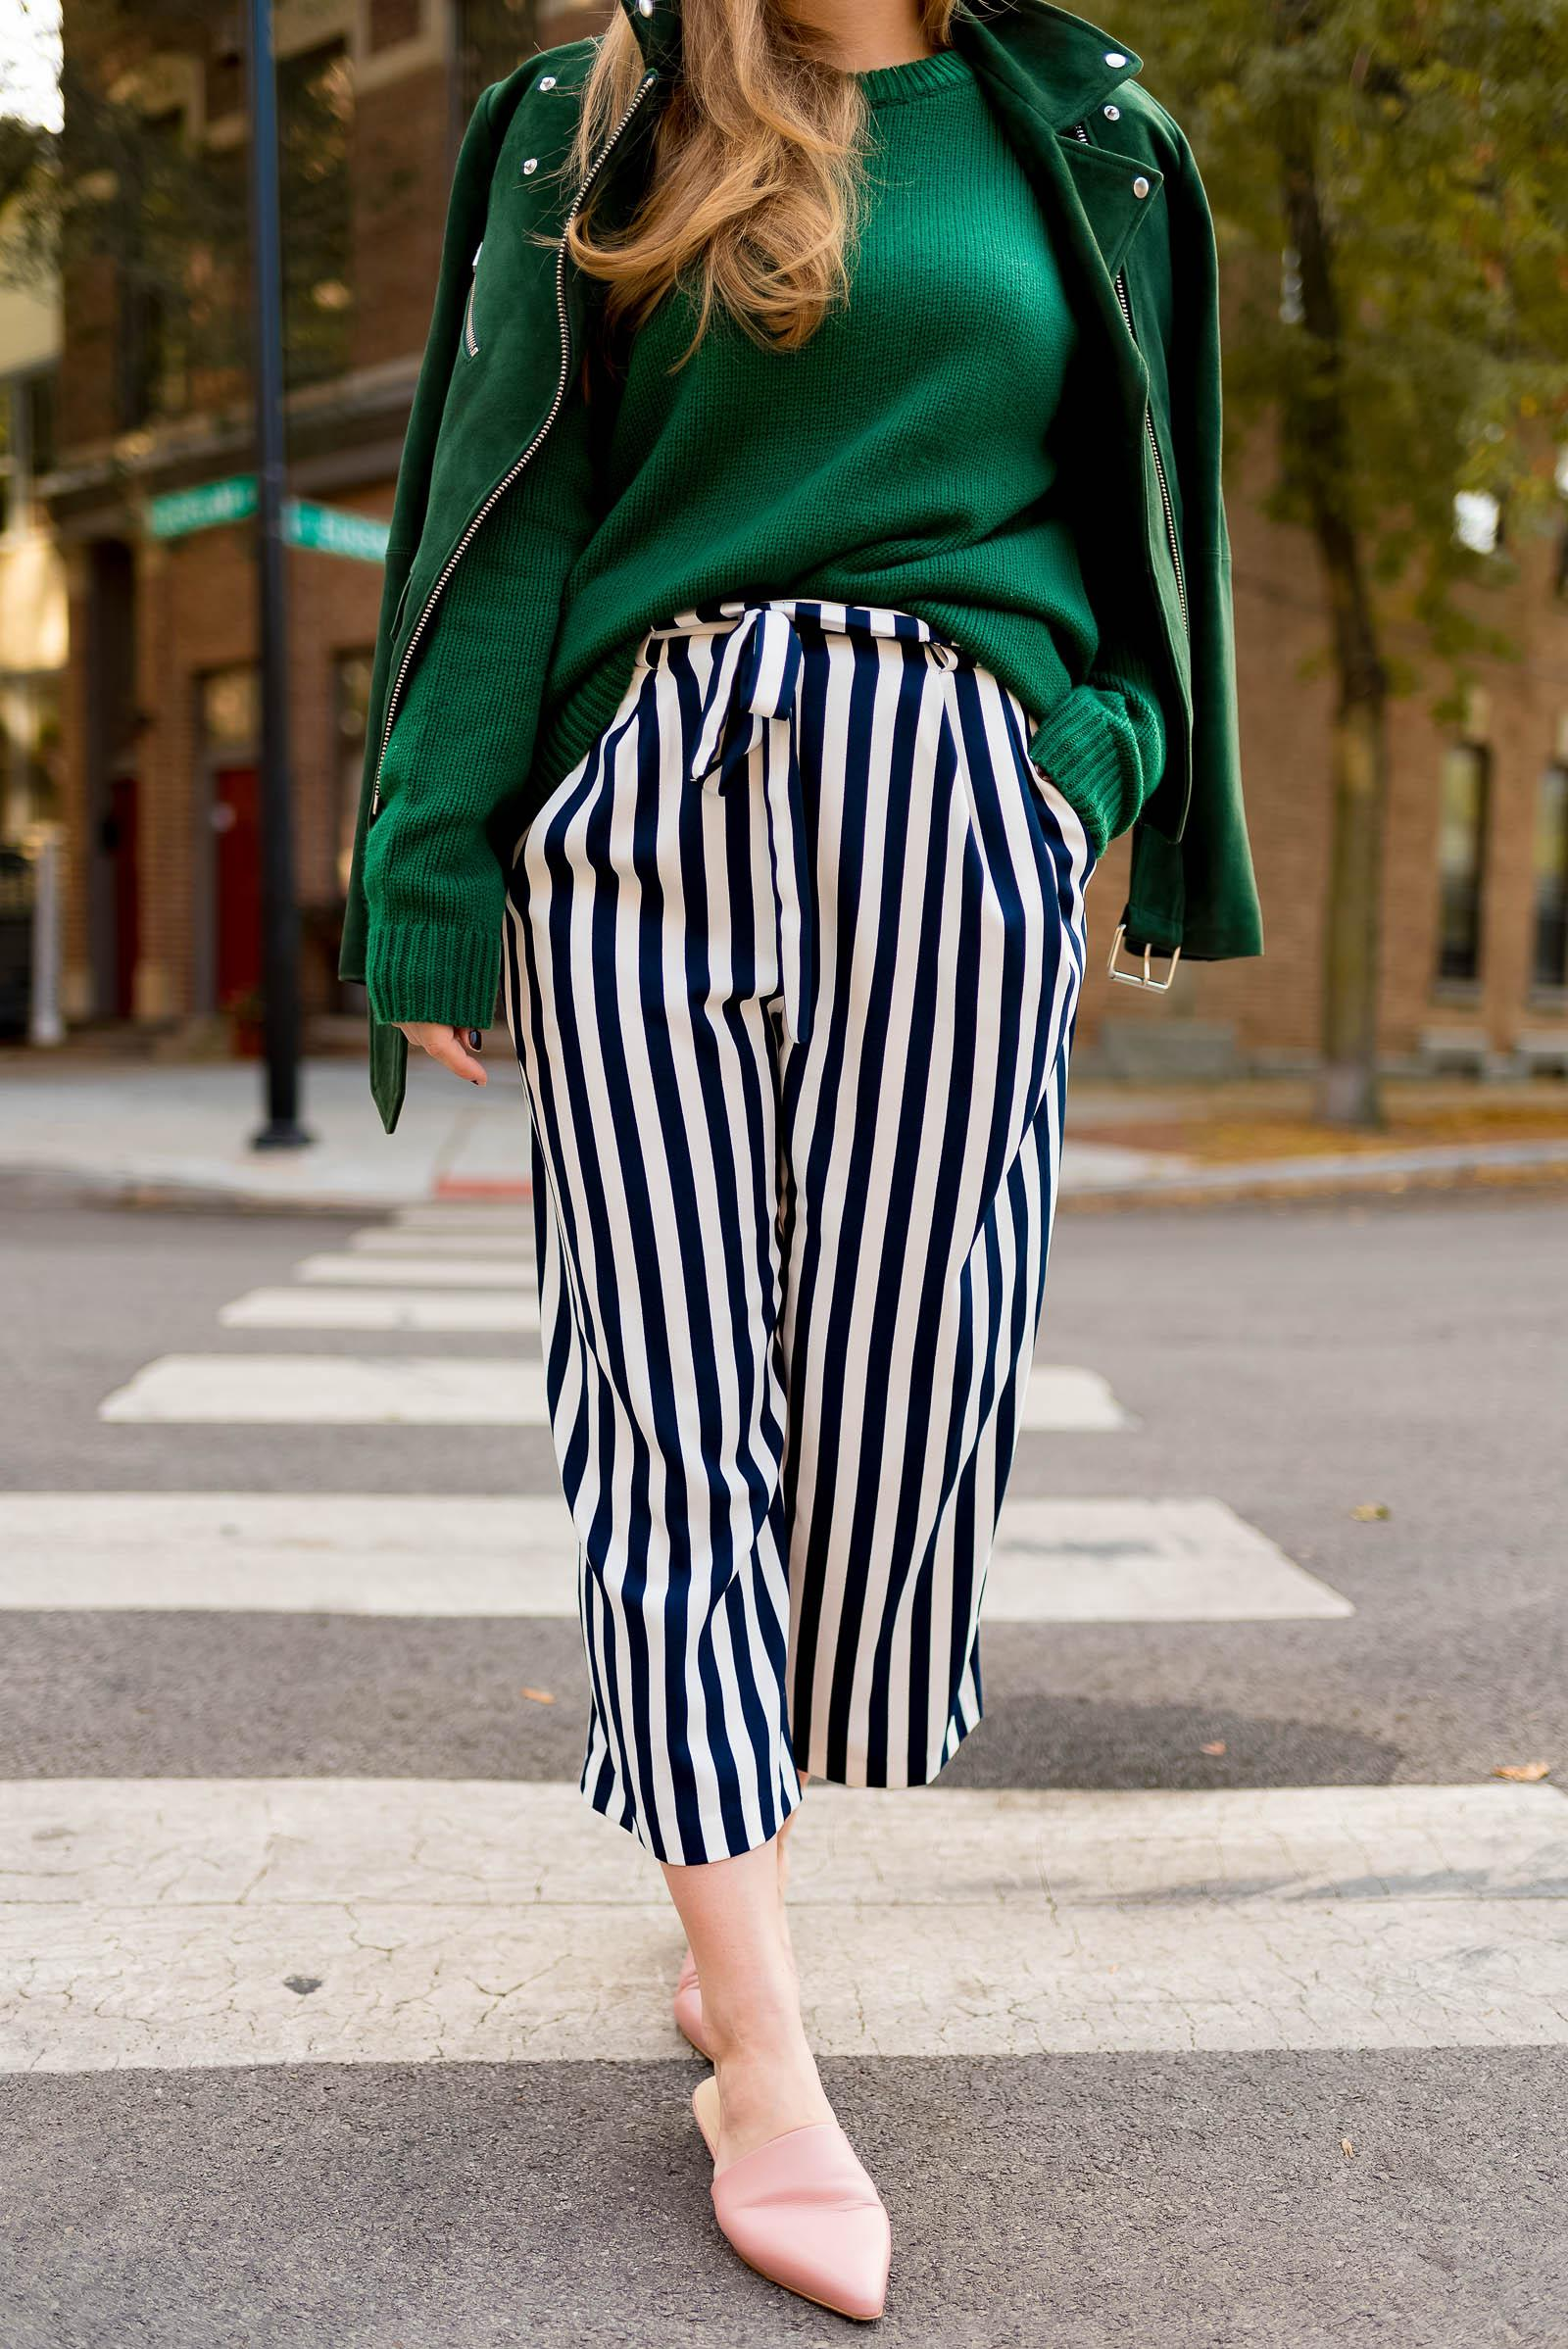 Green Suede Striped Fall Outfit